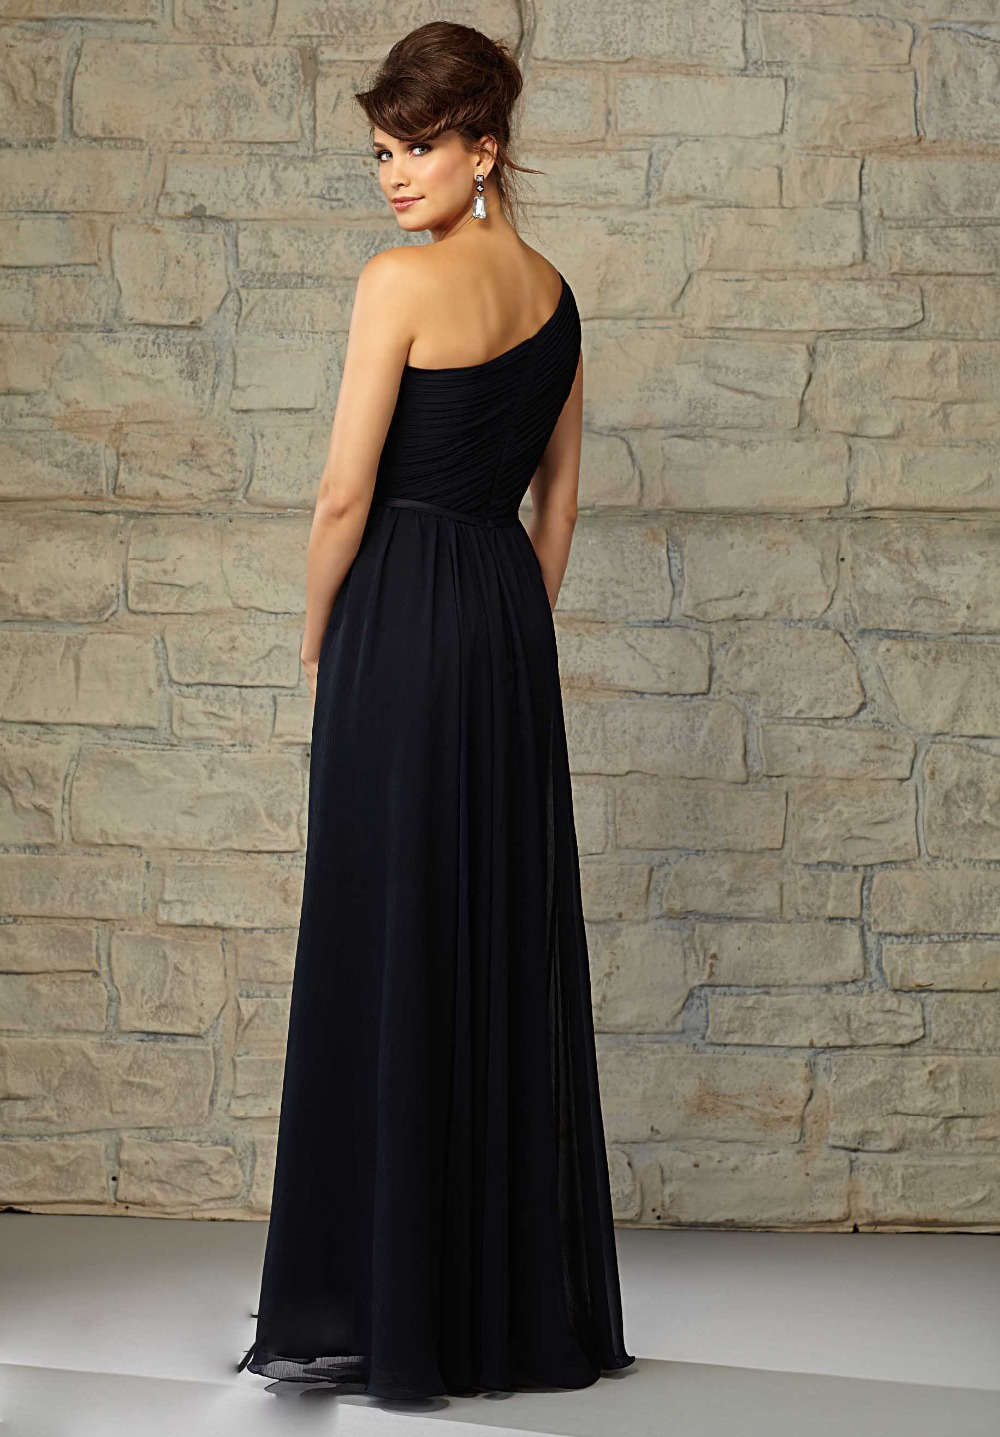 vestido longo Elegant Long One Shoulder Black Chiffon Bridesmaid Dresses Prom Gown Sleeveless Vestido dress for weddi in Bridesmaid Dresses from Weddings Events